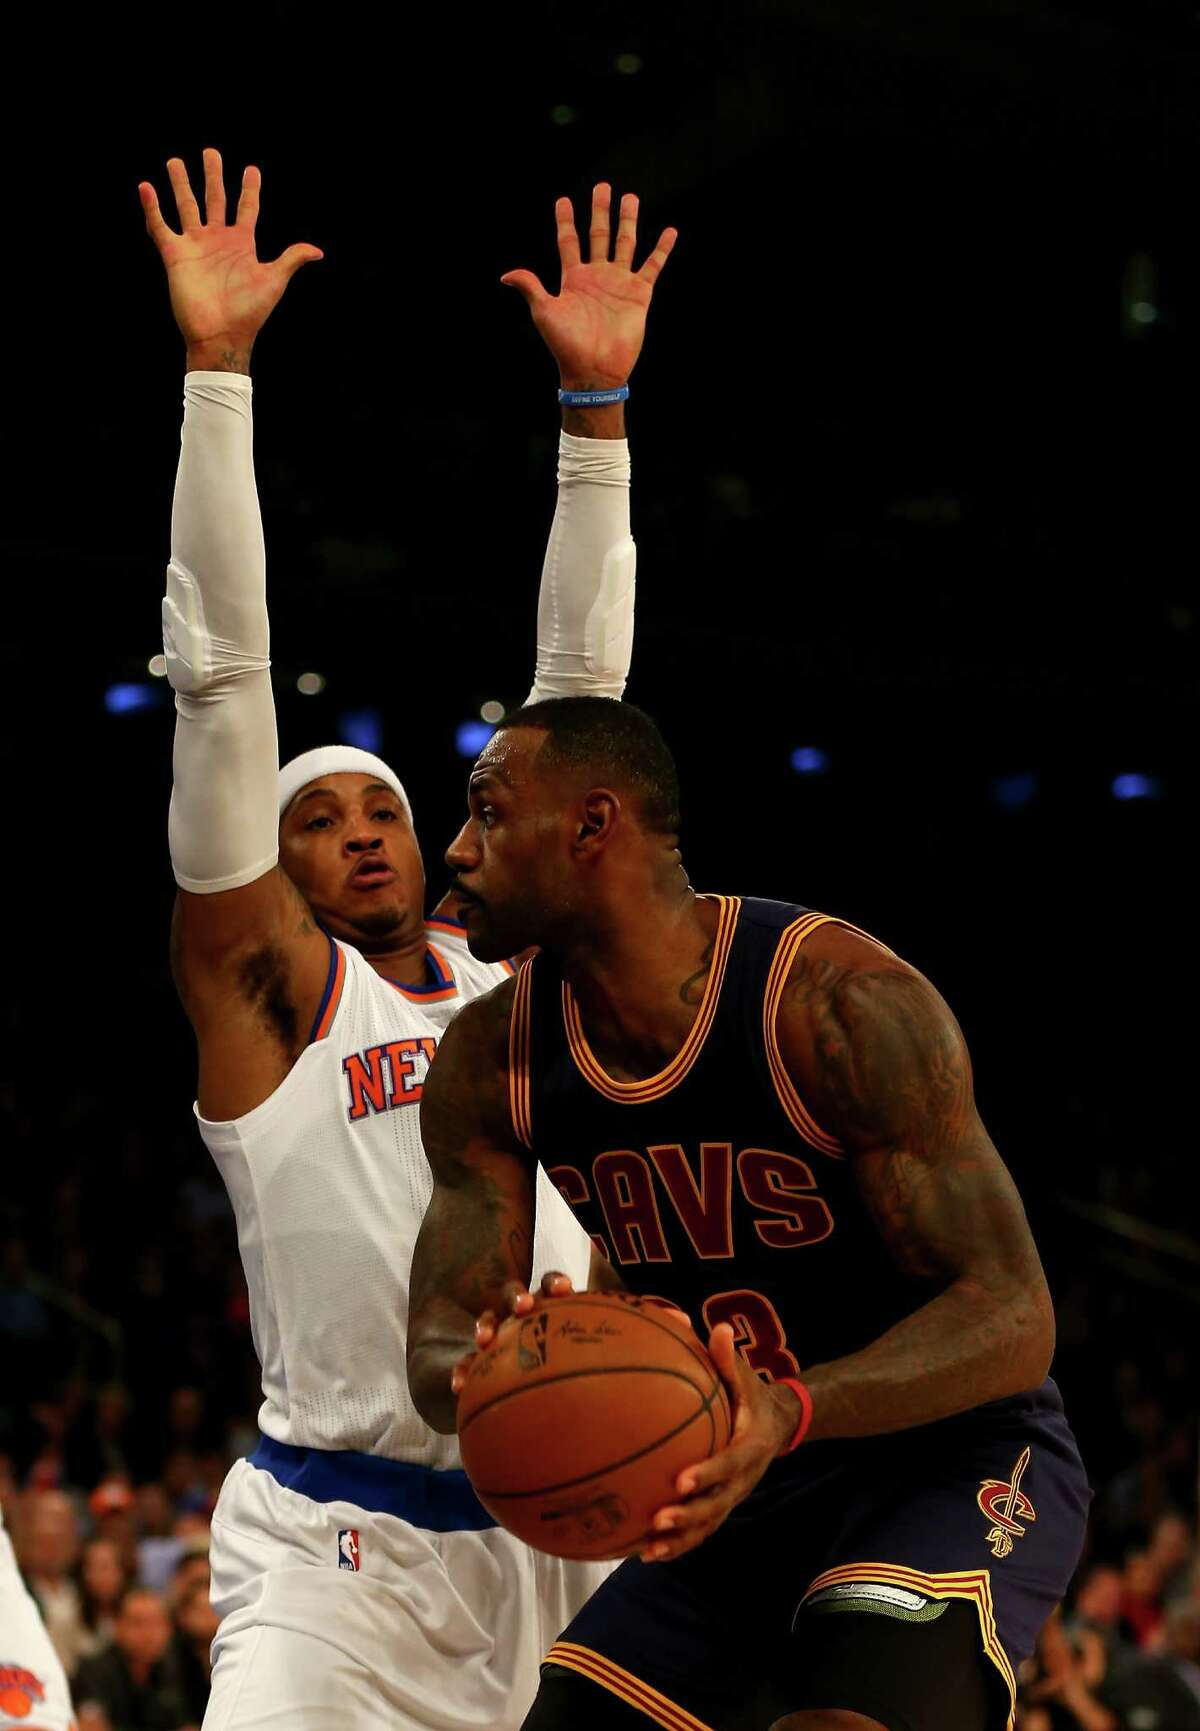 NEW YORK, NY - NOVEMBER 13: LeBron James #23 of the Cleveland Cavaliers heads for the net as Carmelo Anthony #7 of the New York Knicks defends in the first quarter at Madison Square Garden on November 13, 2015 in New York City.NOTE TO USER: User expressly acknowledges and agrees that, by downloading and/or using this photograph, user is consenting to the terms and conditions of the Getty Images License Agreement. (Photo by Elsa/Getty Images) ORG XMIT: 575728163